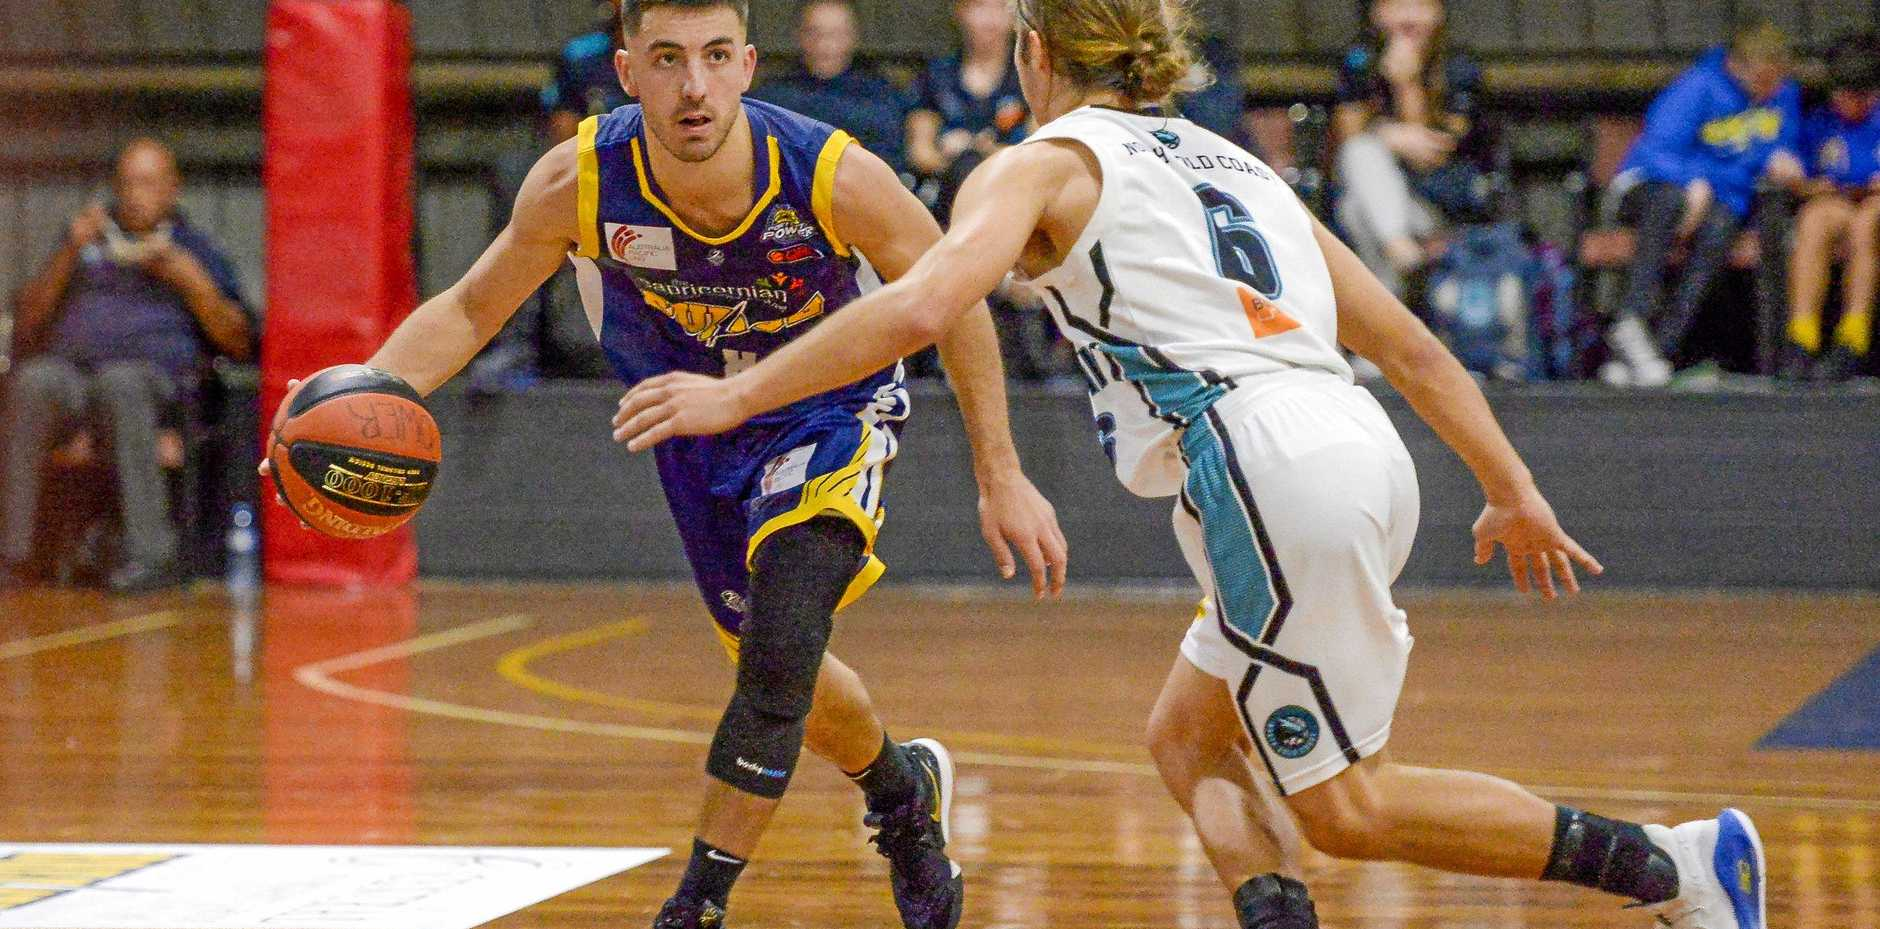 SURGING AHEAD: Gladstone guard Kyle Tipene has been one of the mainstays this season.